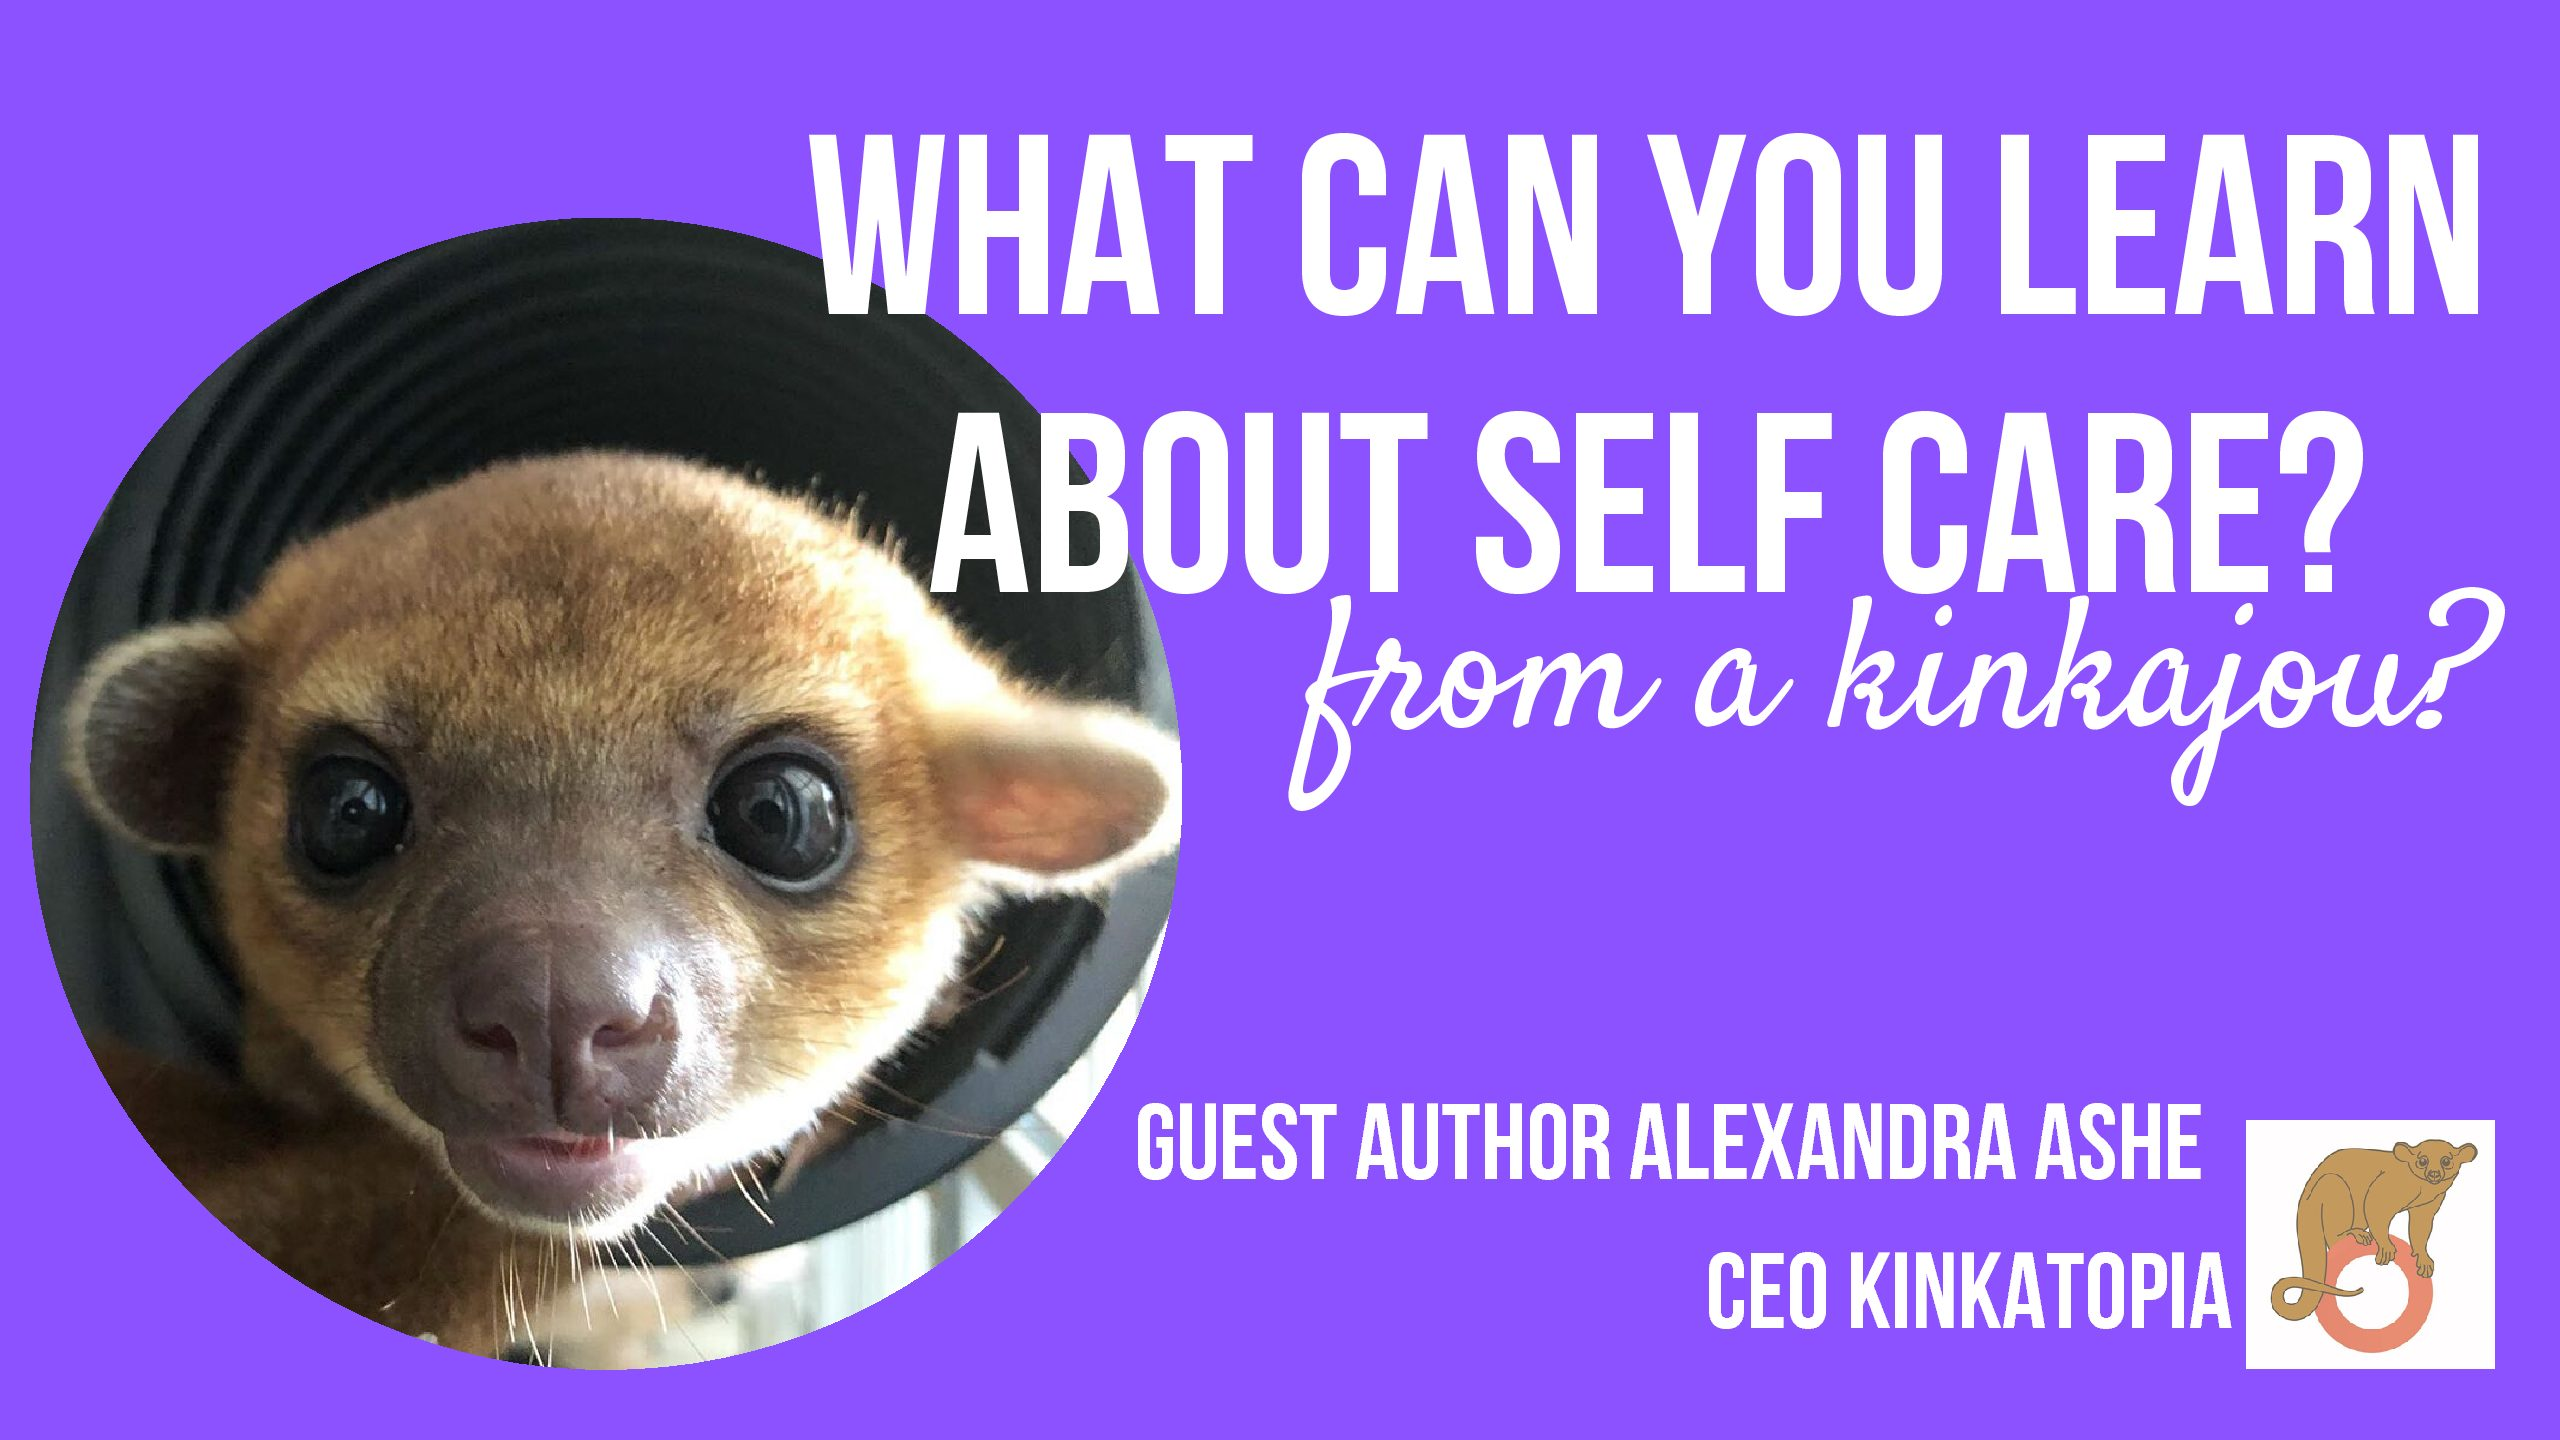 What can you learn about self care from a kinkajou?